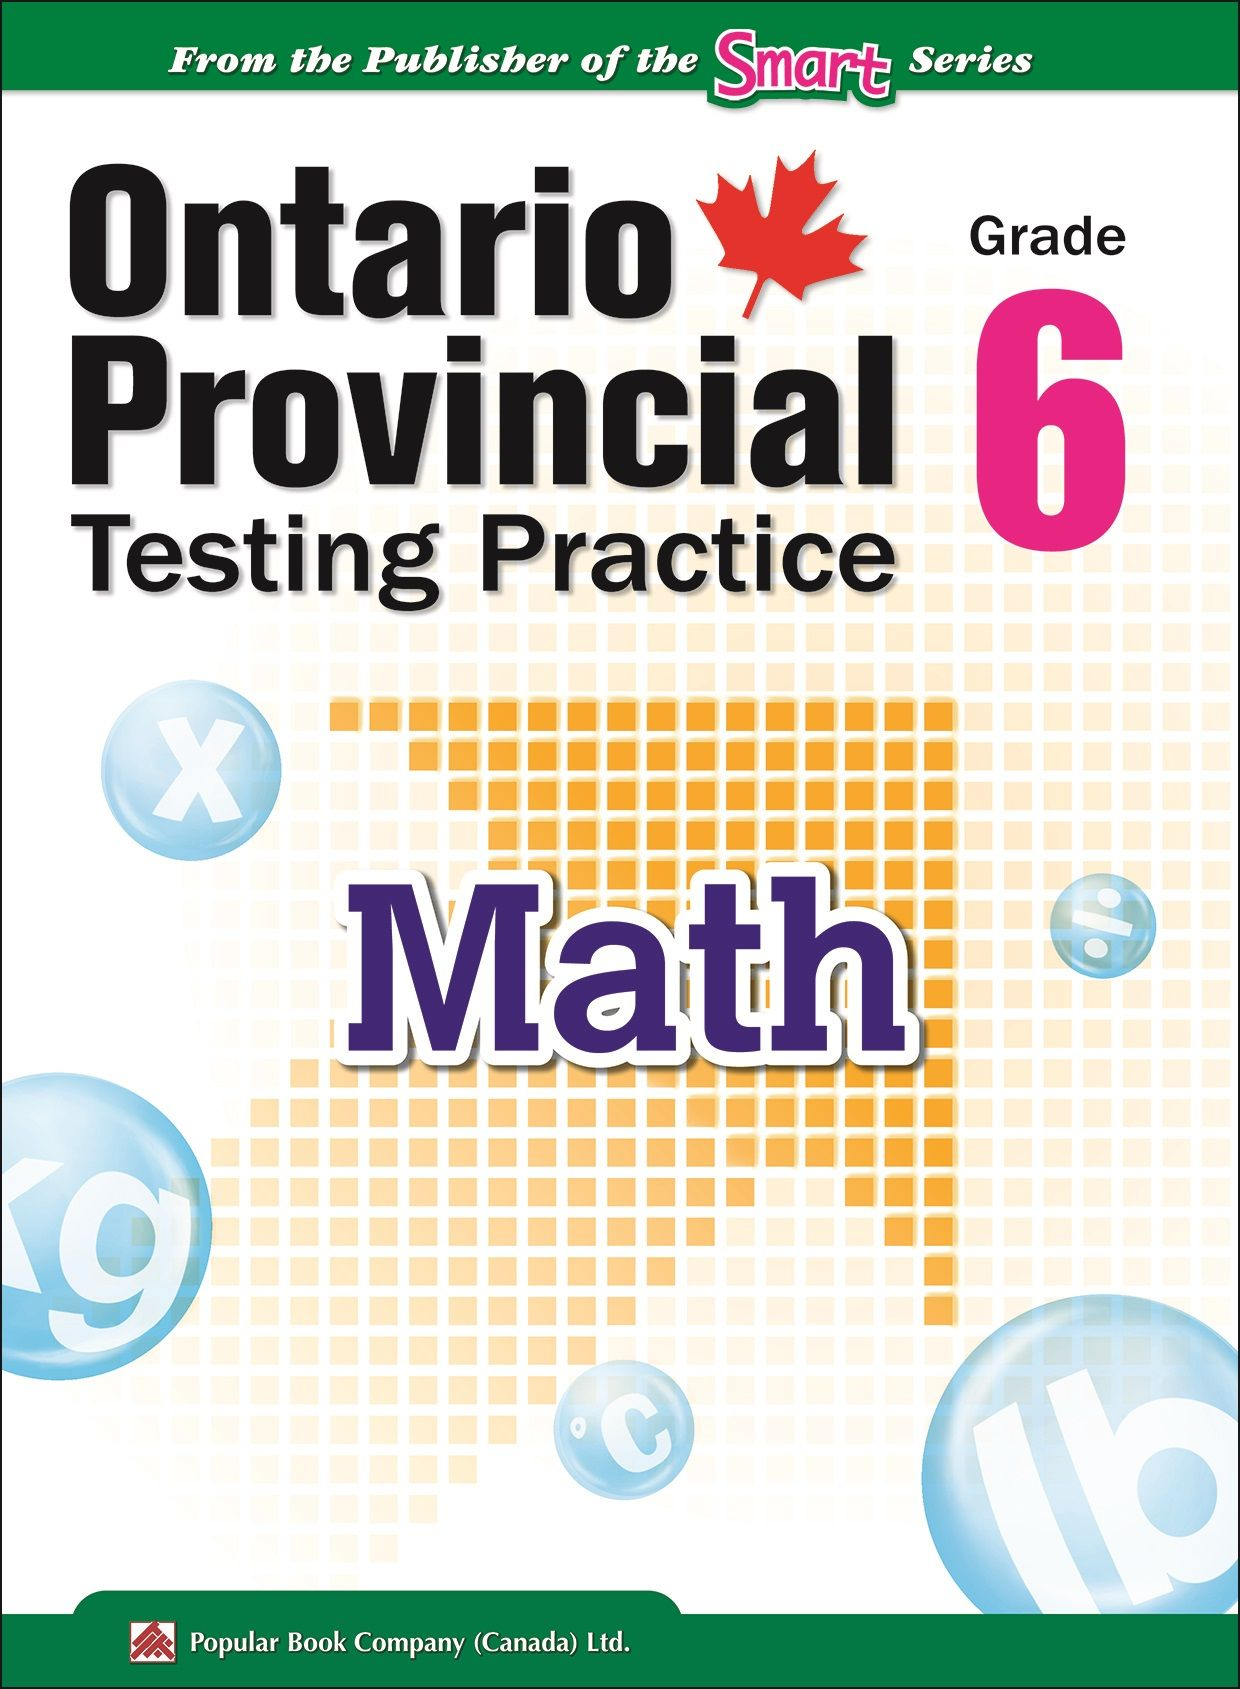 Download The Free Pdf Sample Pages From Ontario Provincial Testing Practice Math Grade 6 To See How This W Math Workbook Grade 6 Math Worksheets Grade 6 Math